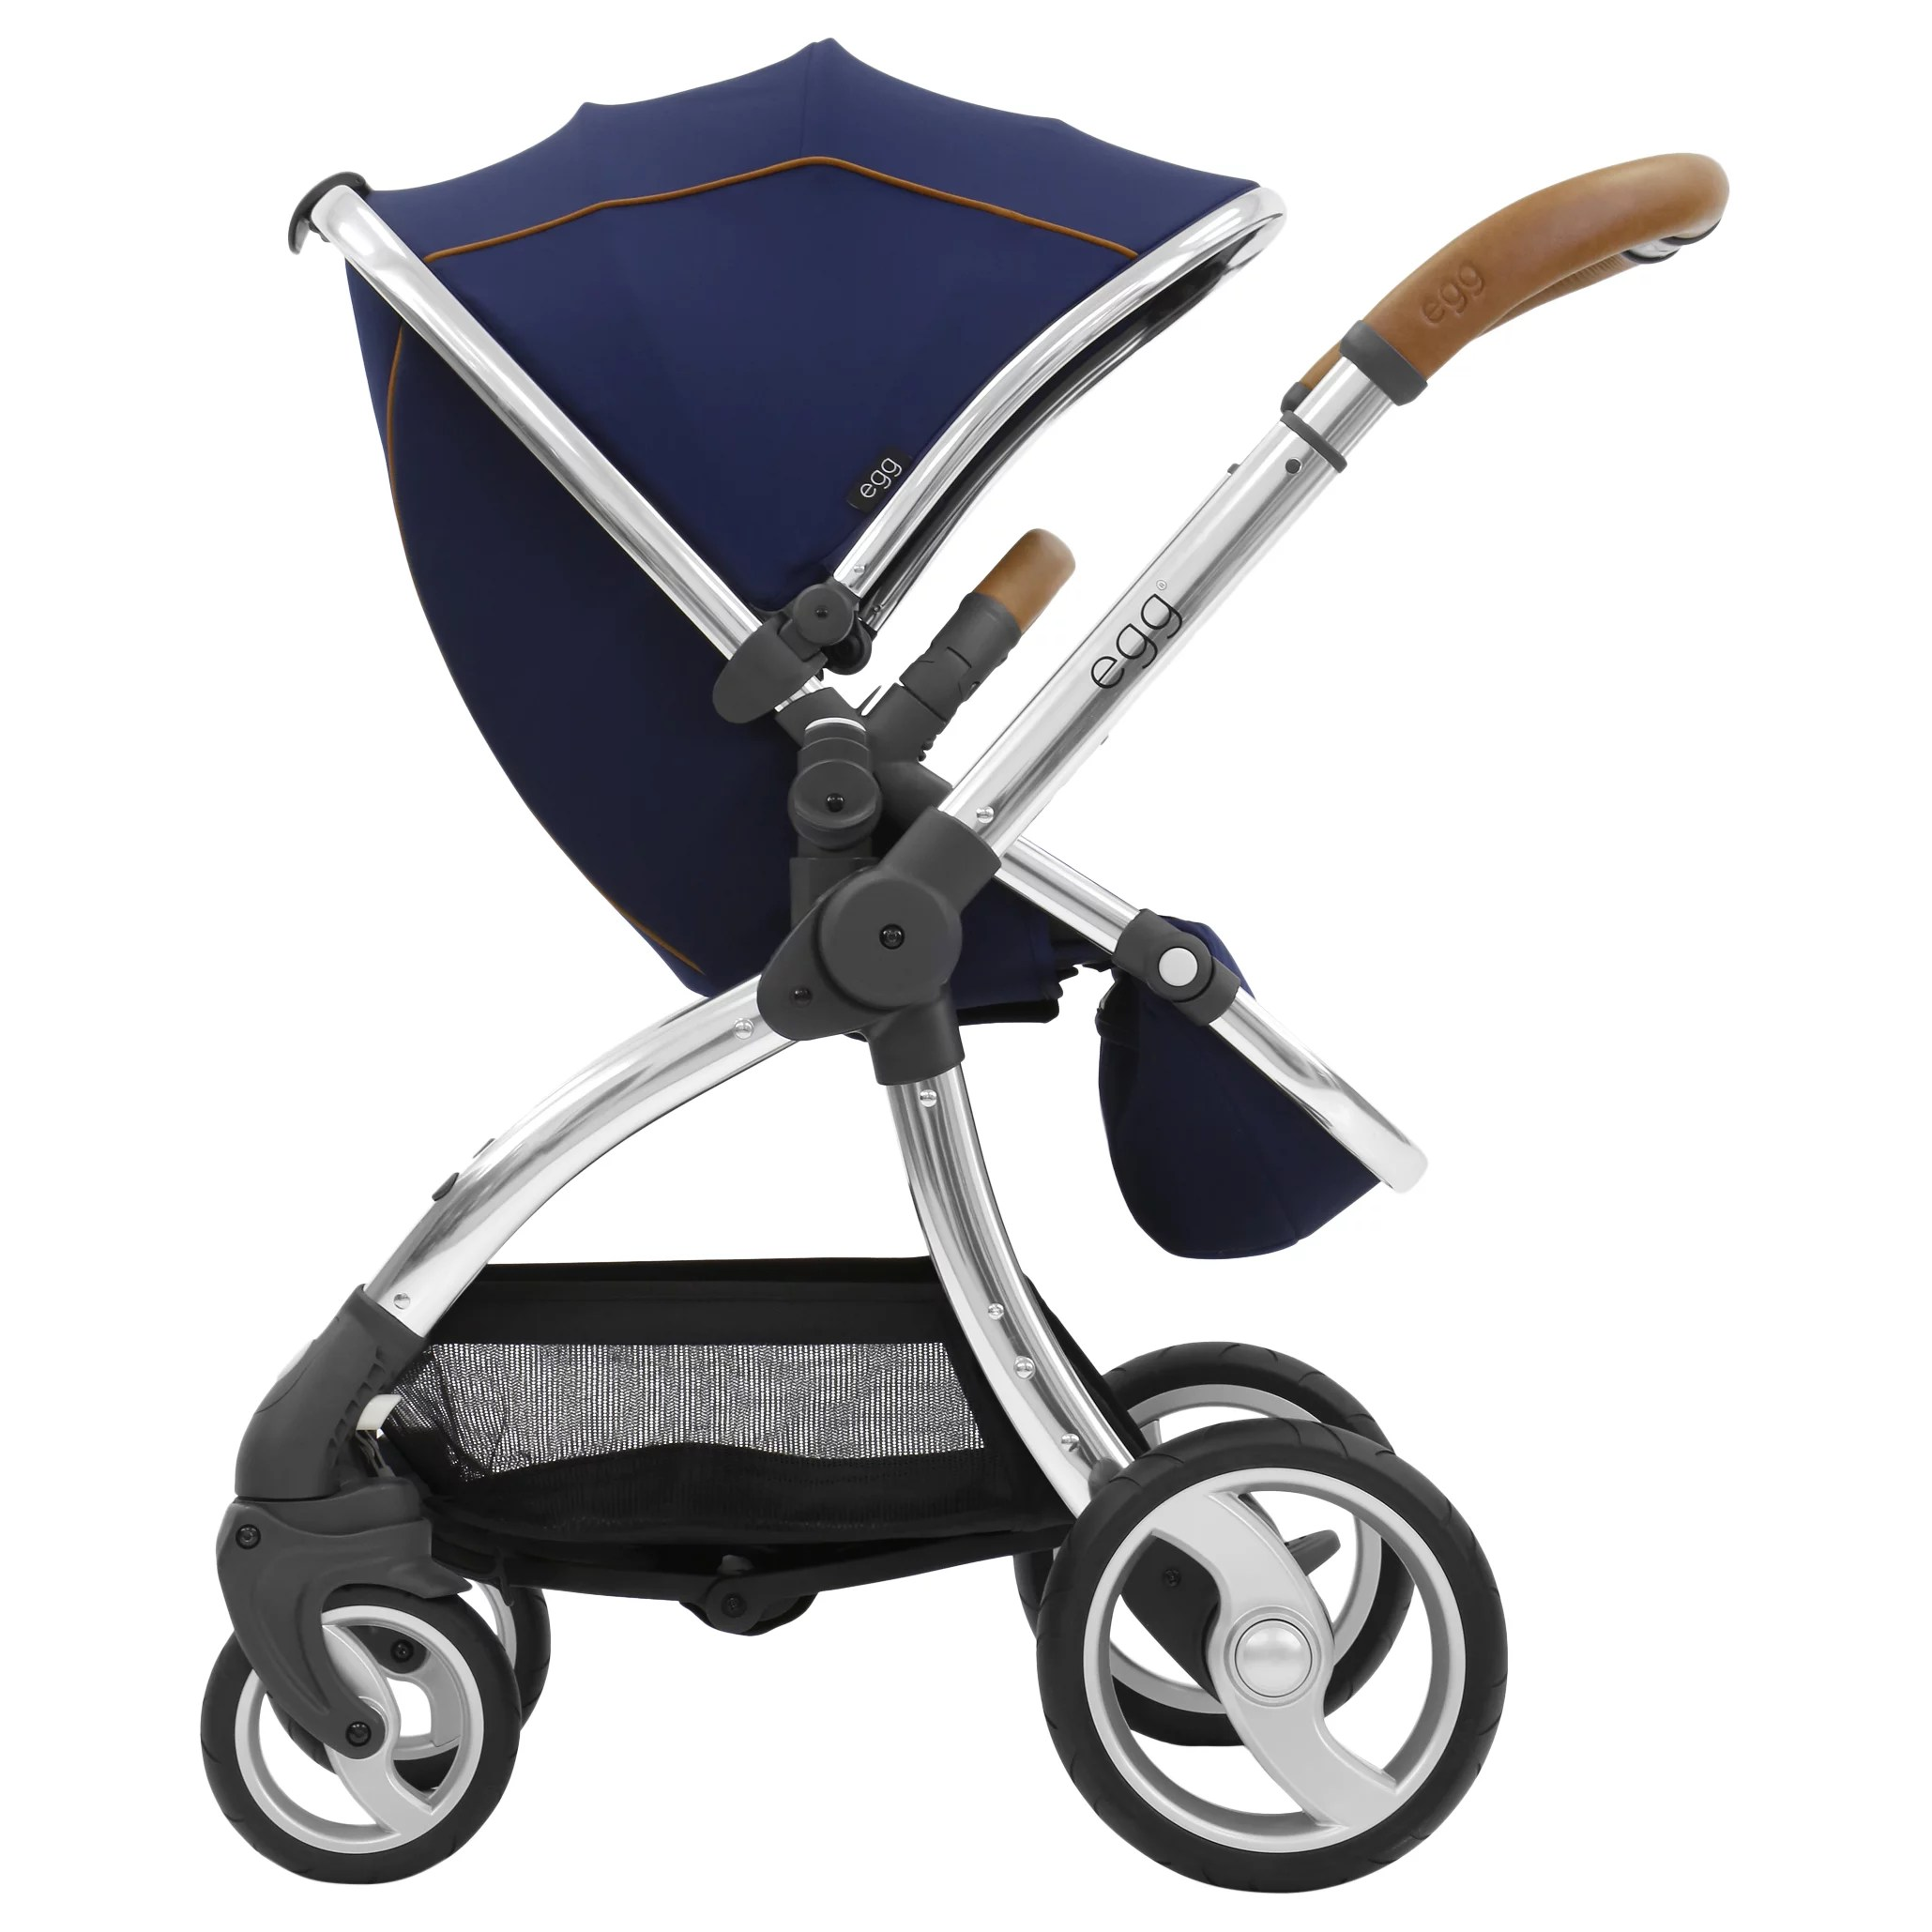 Egg Pram Parasol John Lewis Egg Stroller Base And Seat With Fleece Liner Regal Navy At